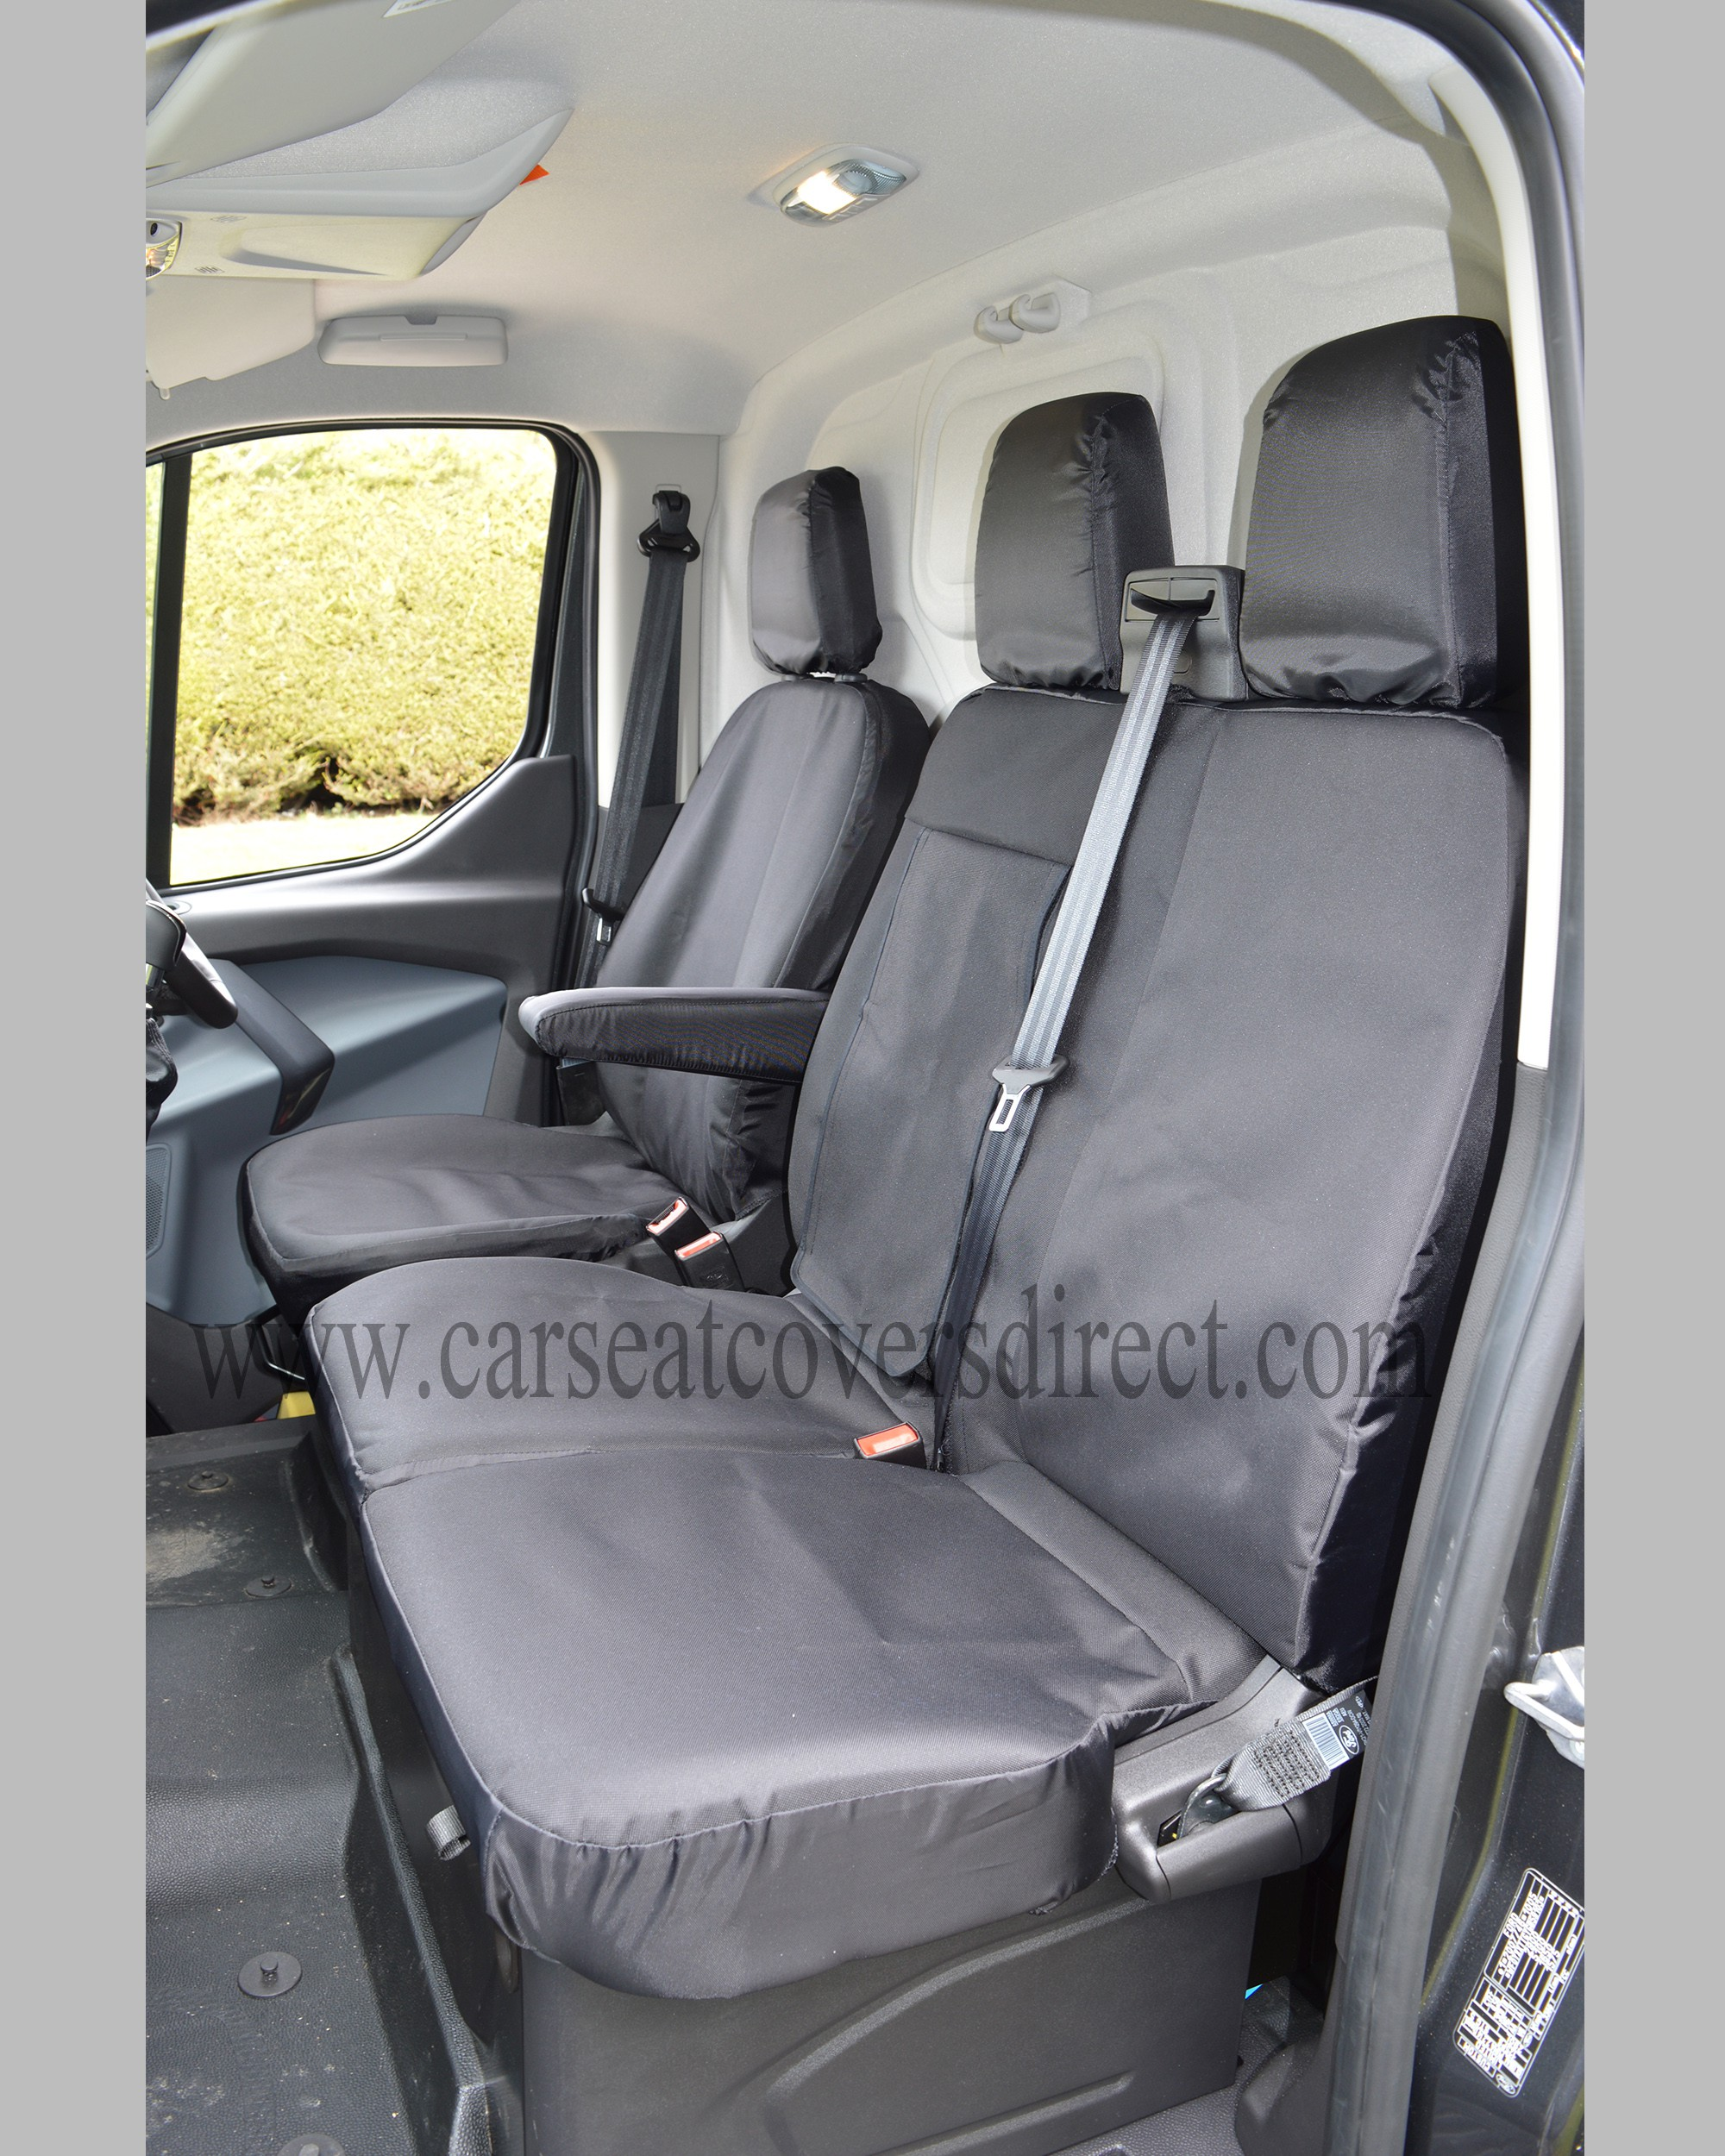 FORD TRANSIT Custom Crewcab Extra Heavy Duty Black Seat Covers Car Seat Covers Direct - Tailored ...